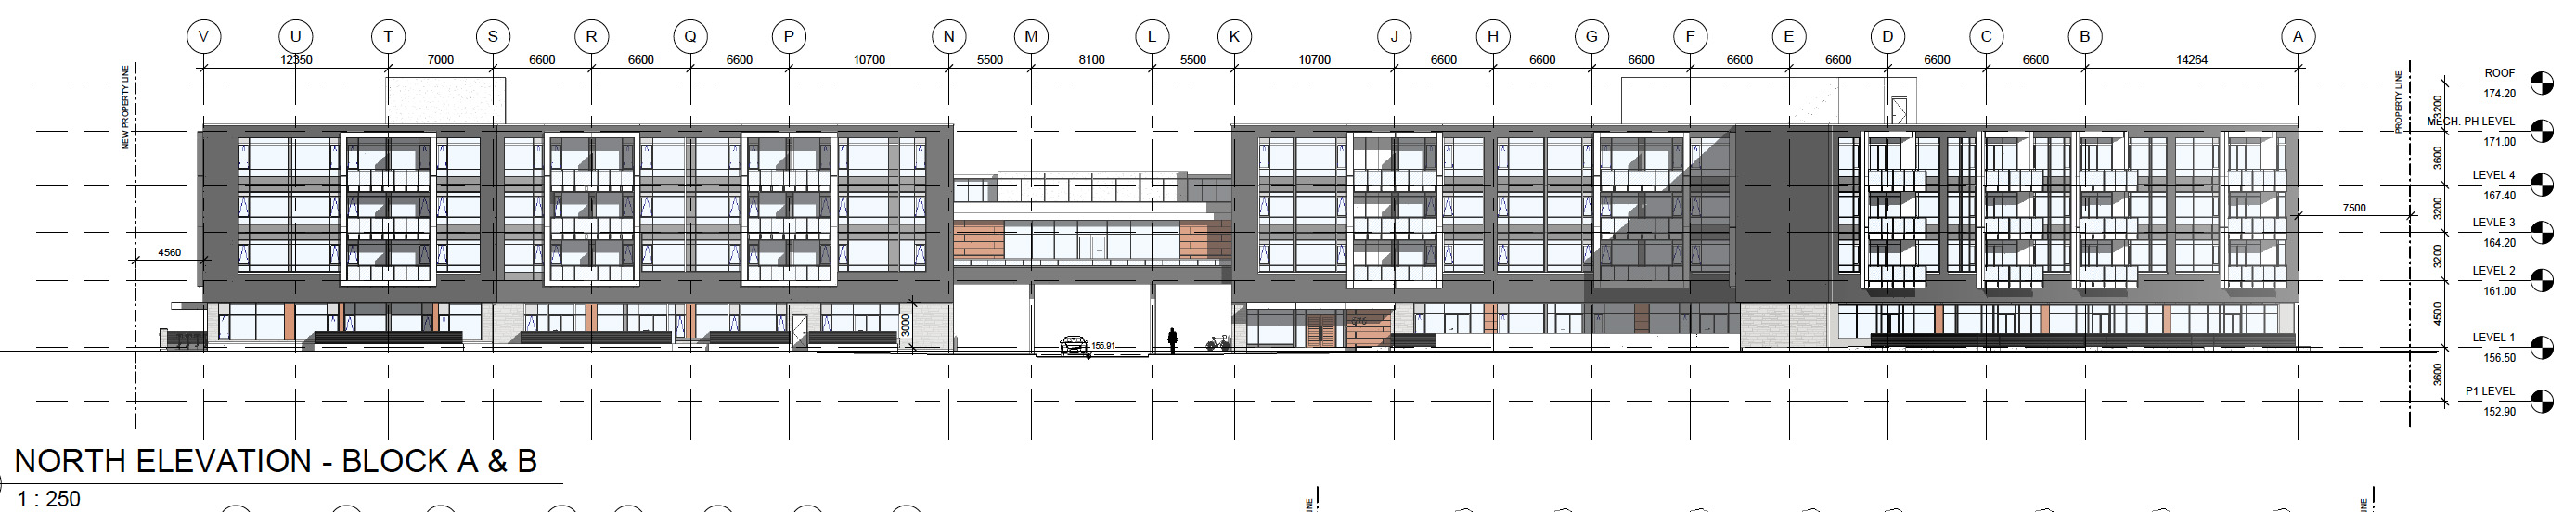 672 Birchmount Rd, Toronto, designed by KFA Architects + Planners Inc. for Insoho Developments